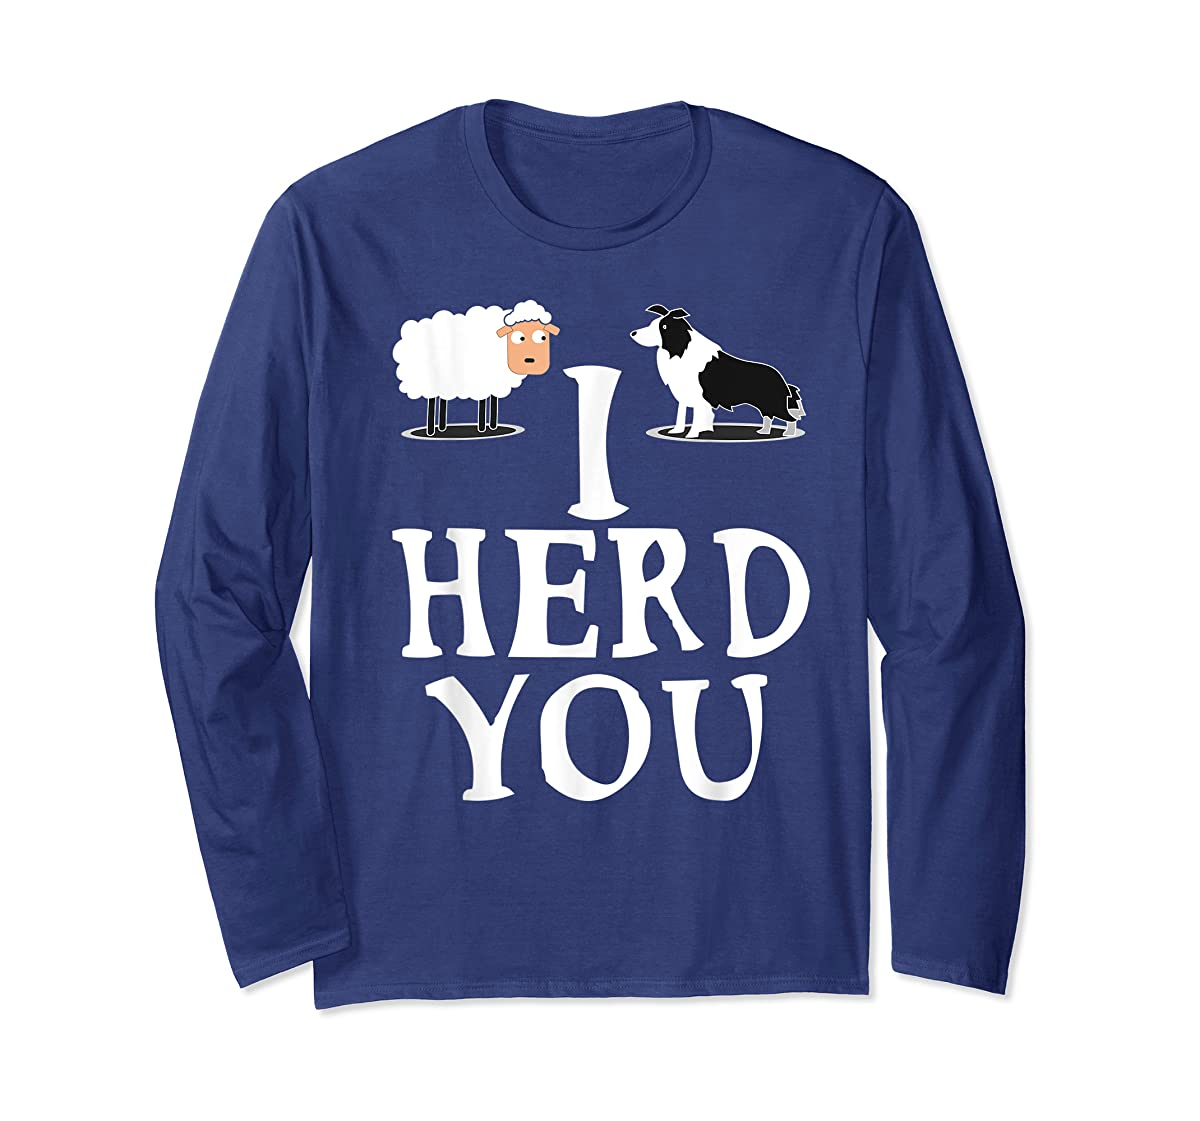 I HERD YOU BORDER COLLIE T shirt Gifts for Men Women Kids-Long Sleeve-Navy